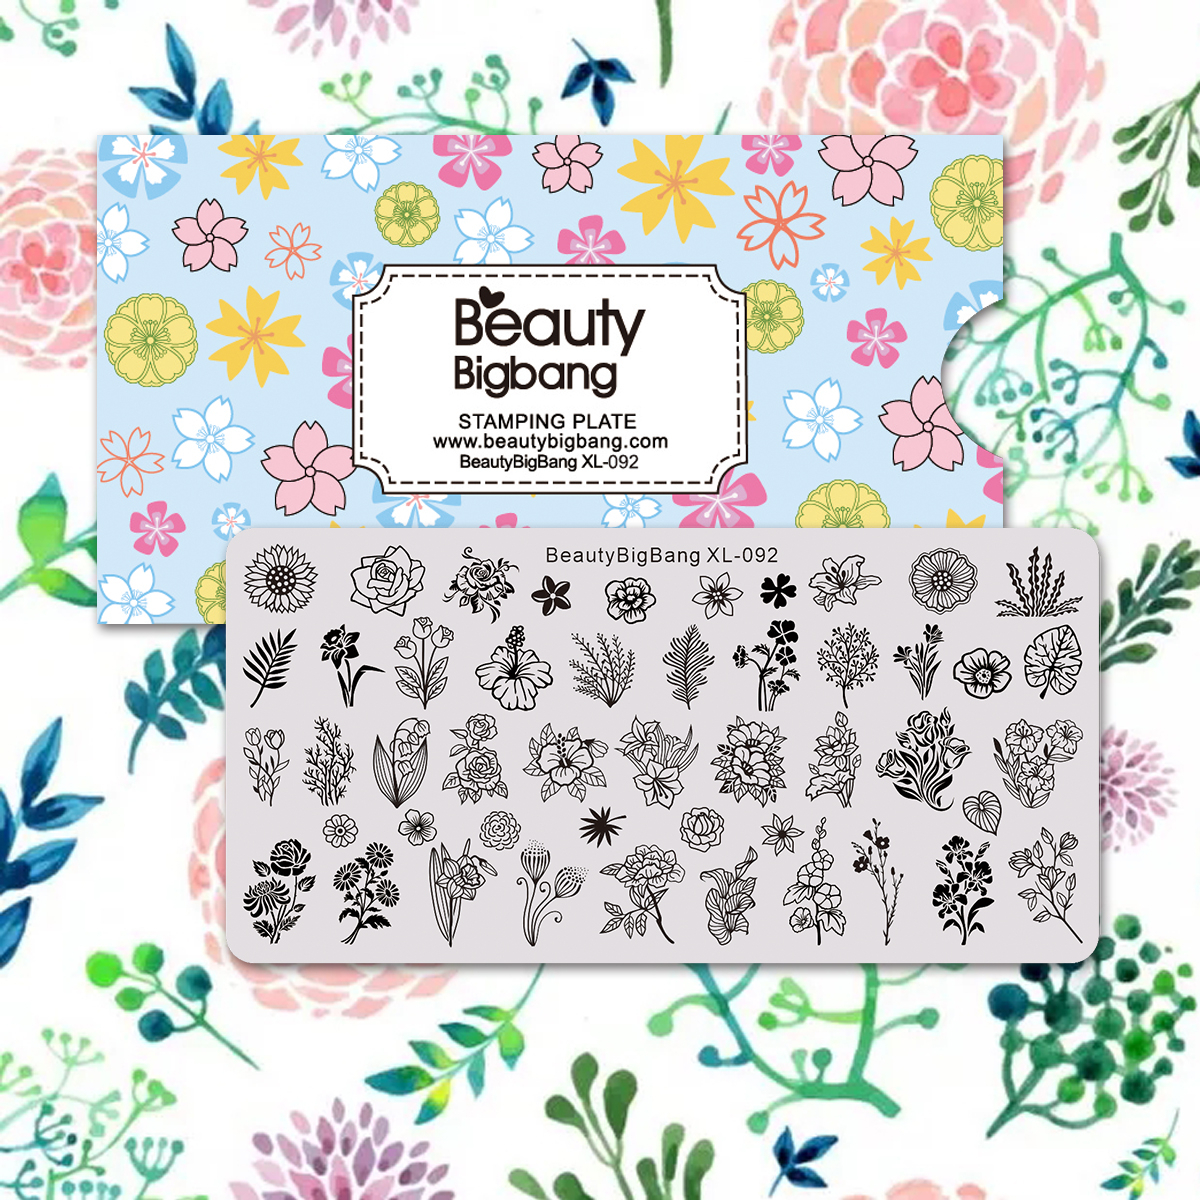 BeautyBigBang Nail Stamping Plates Flower Grass Leaf Mold Nail Template For Nails Design Stamp Nail Art Image Stamping Template